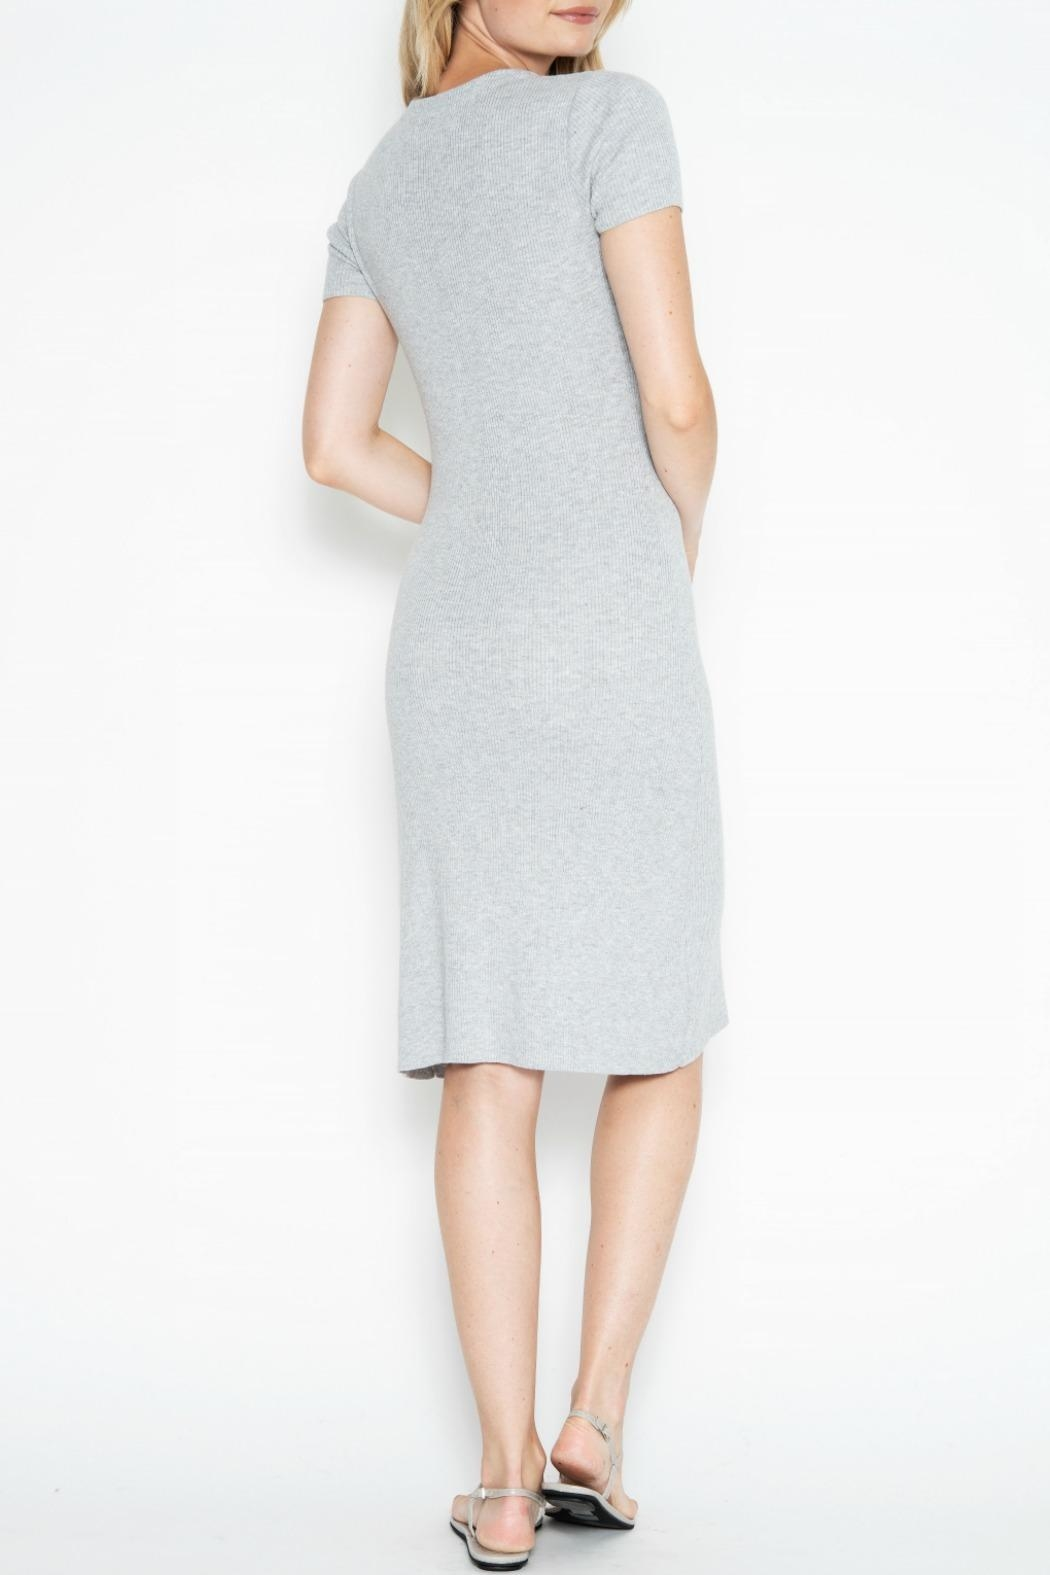 One Grey Day Quentin Dress - Side Cropped Image